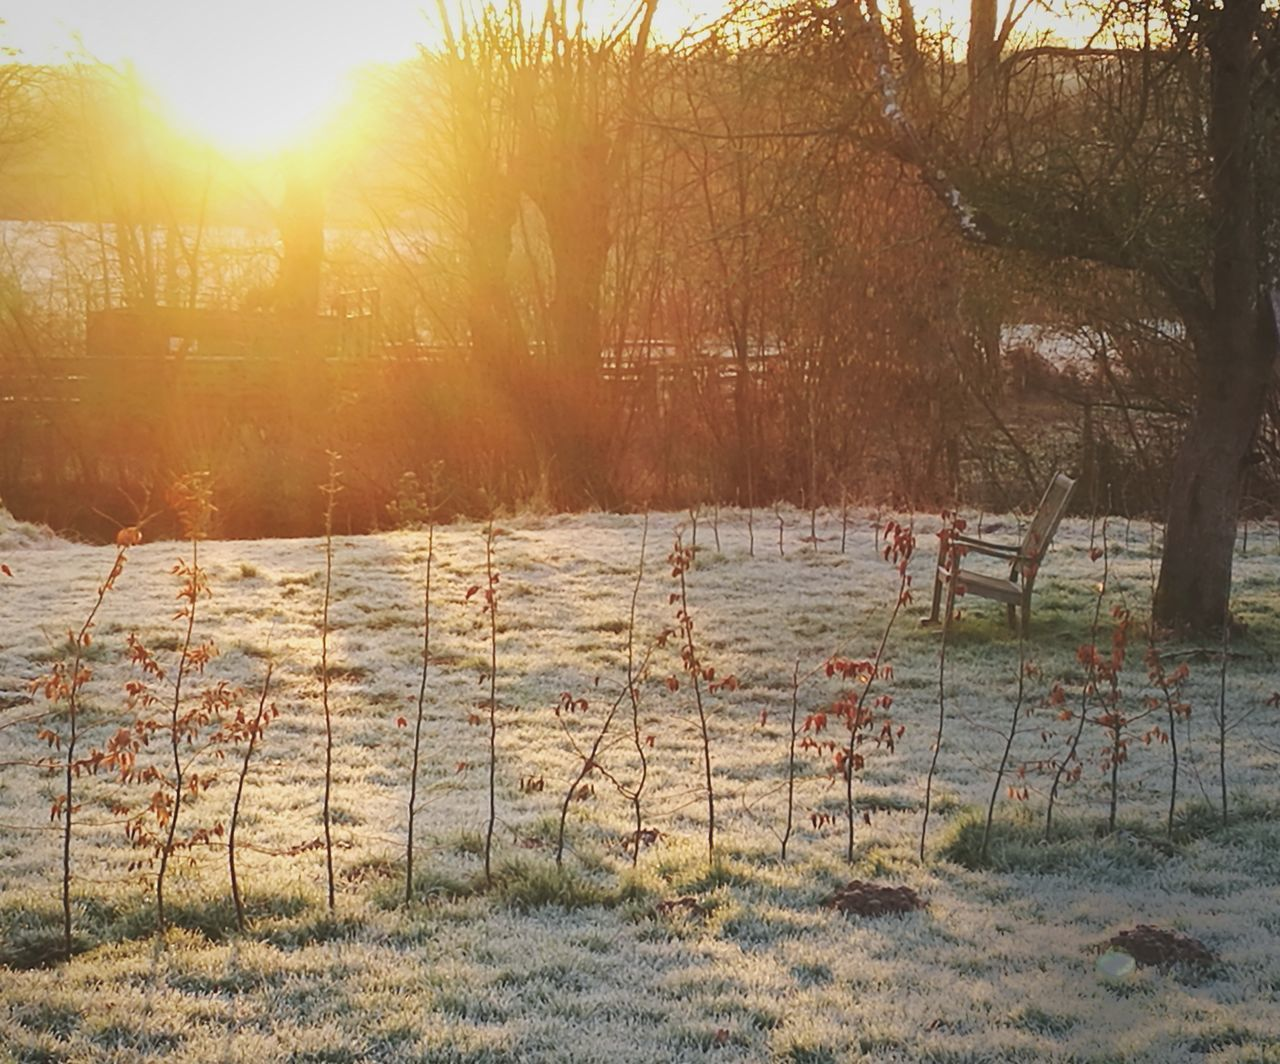 My French countrylife. Early walk in the frosty garden . Tree Sunlight Landscape Grass Nature Garden Photography Sunrise Beauty In Nature Pond France Frenchgarden Day Walking First Eyeem Photo Mobilephotography No People